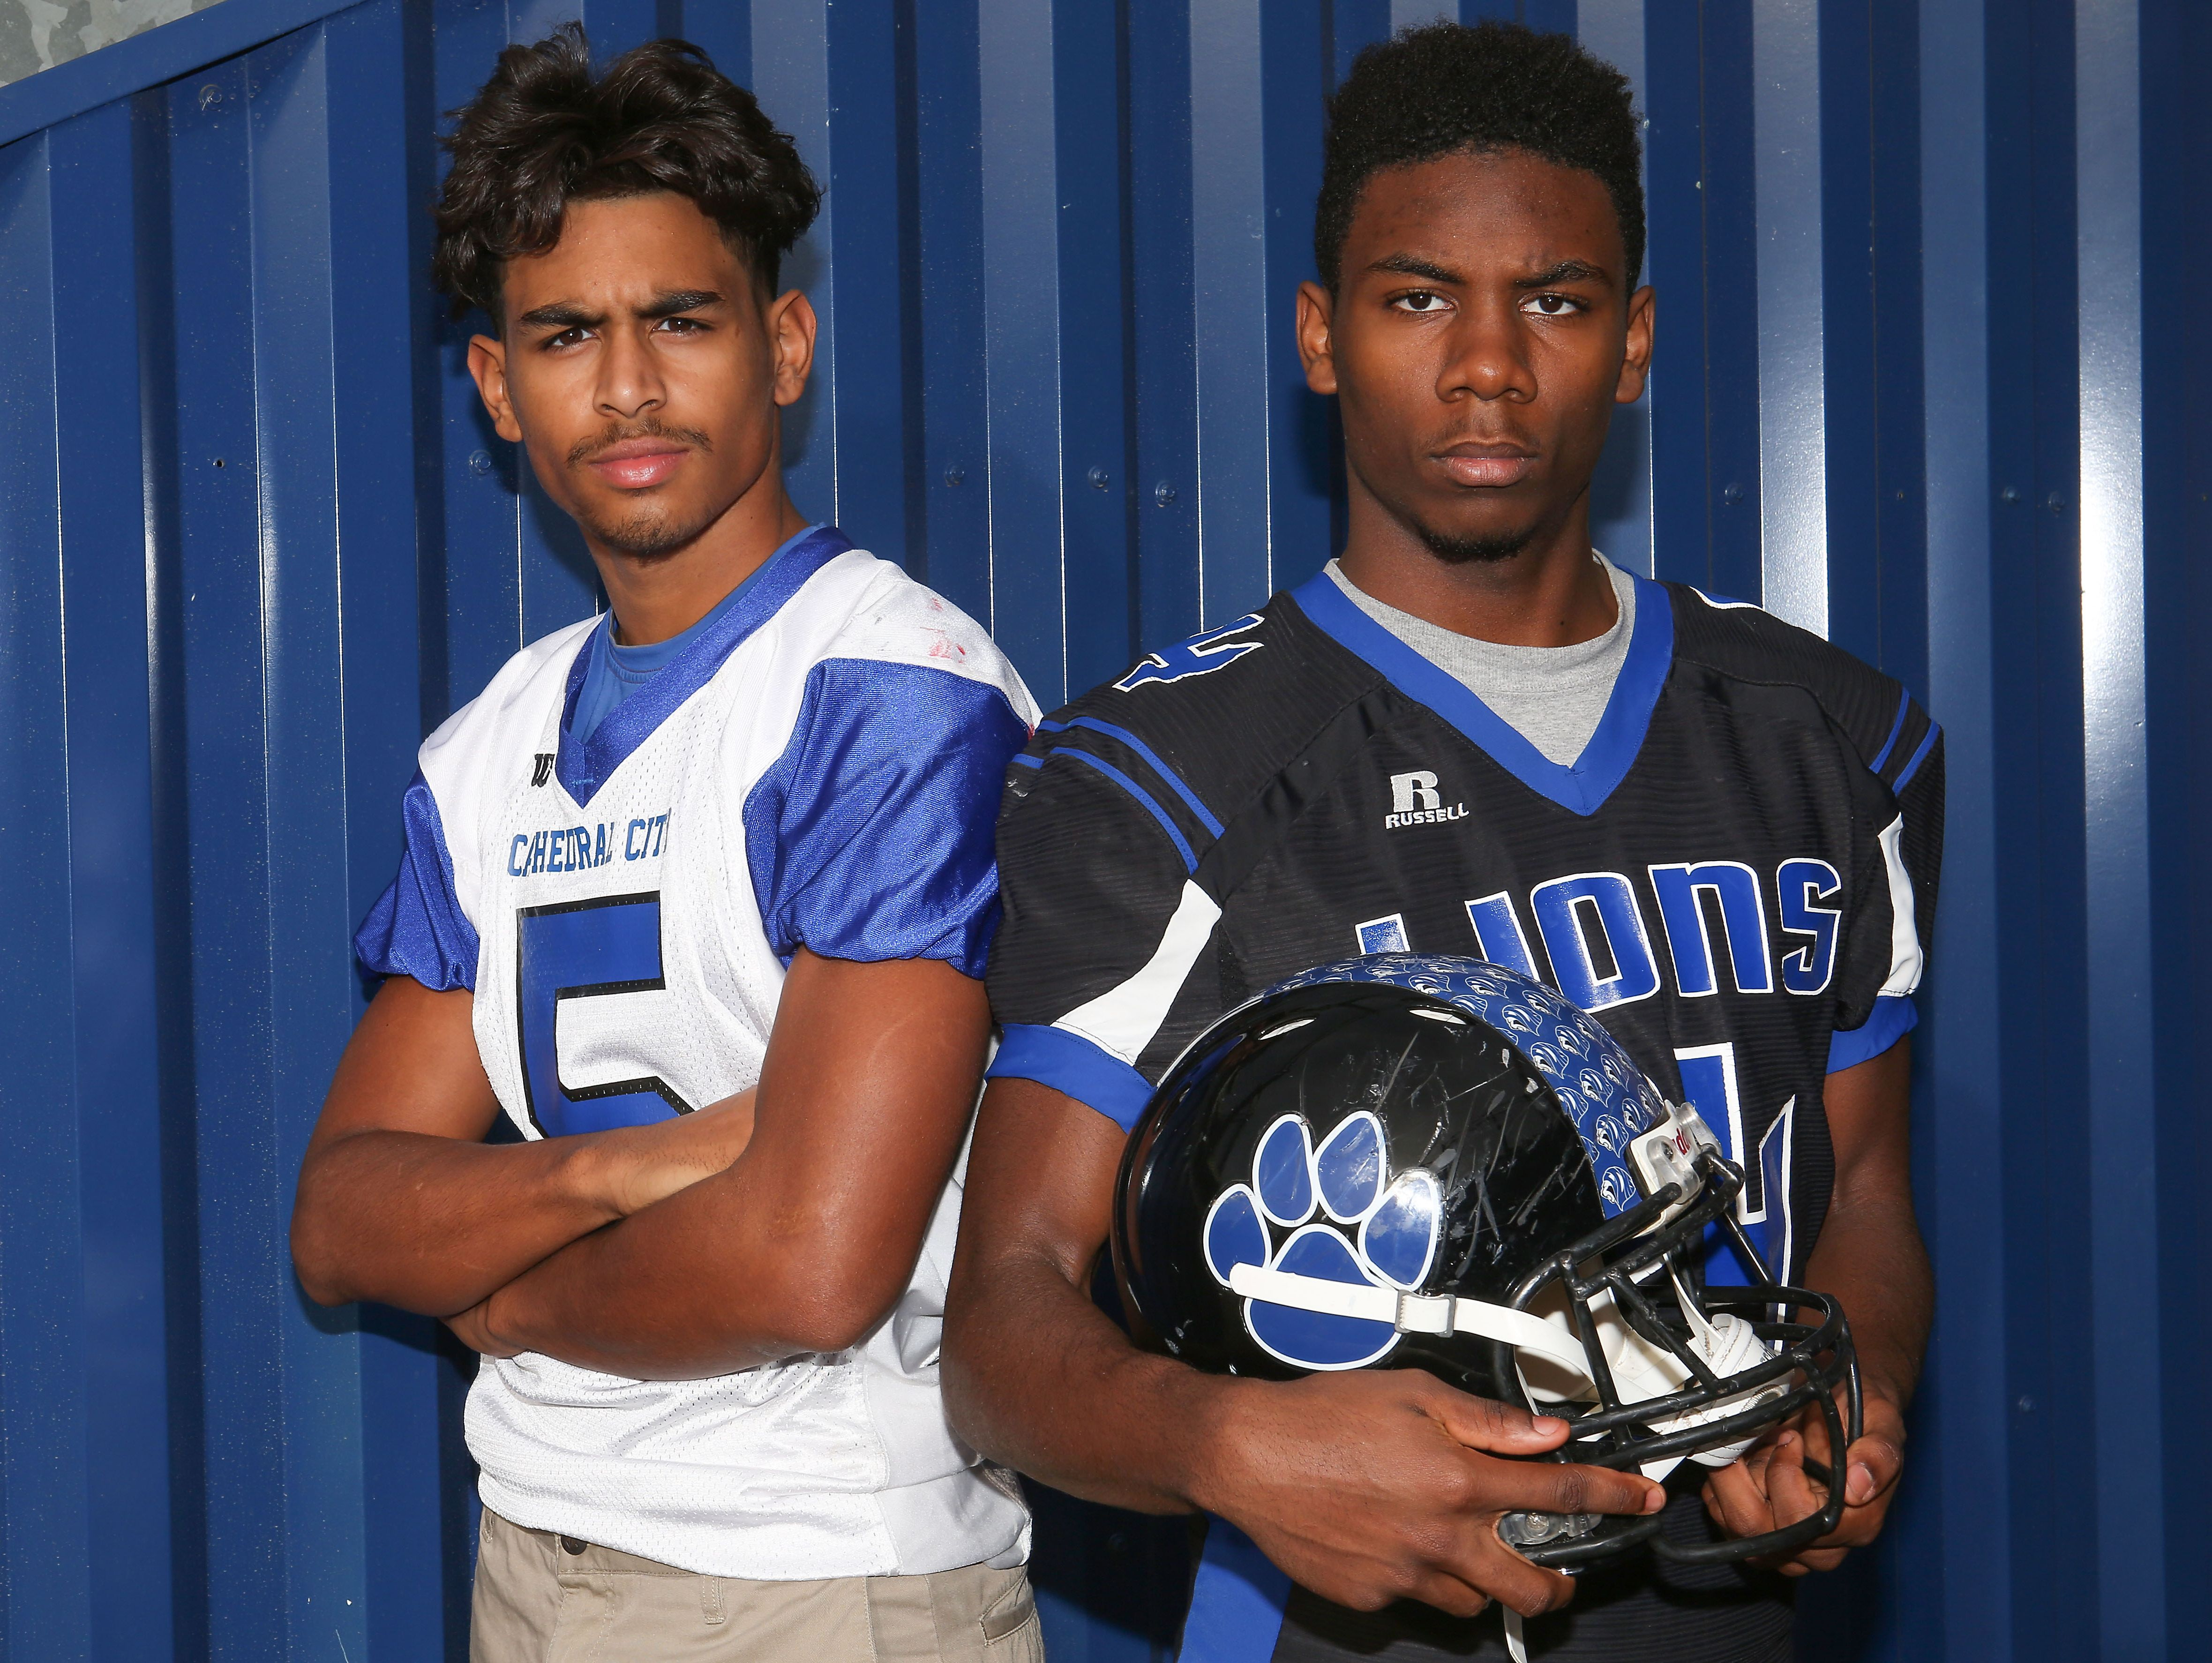 Jordan Wallace, left, and James Green of the Cathedral City High School football program, December 14, 2016.